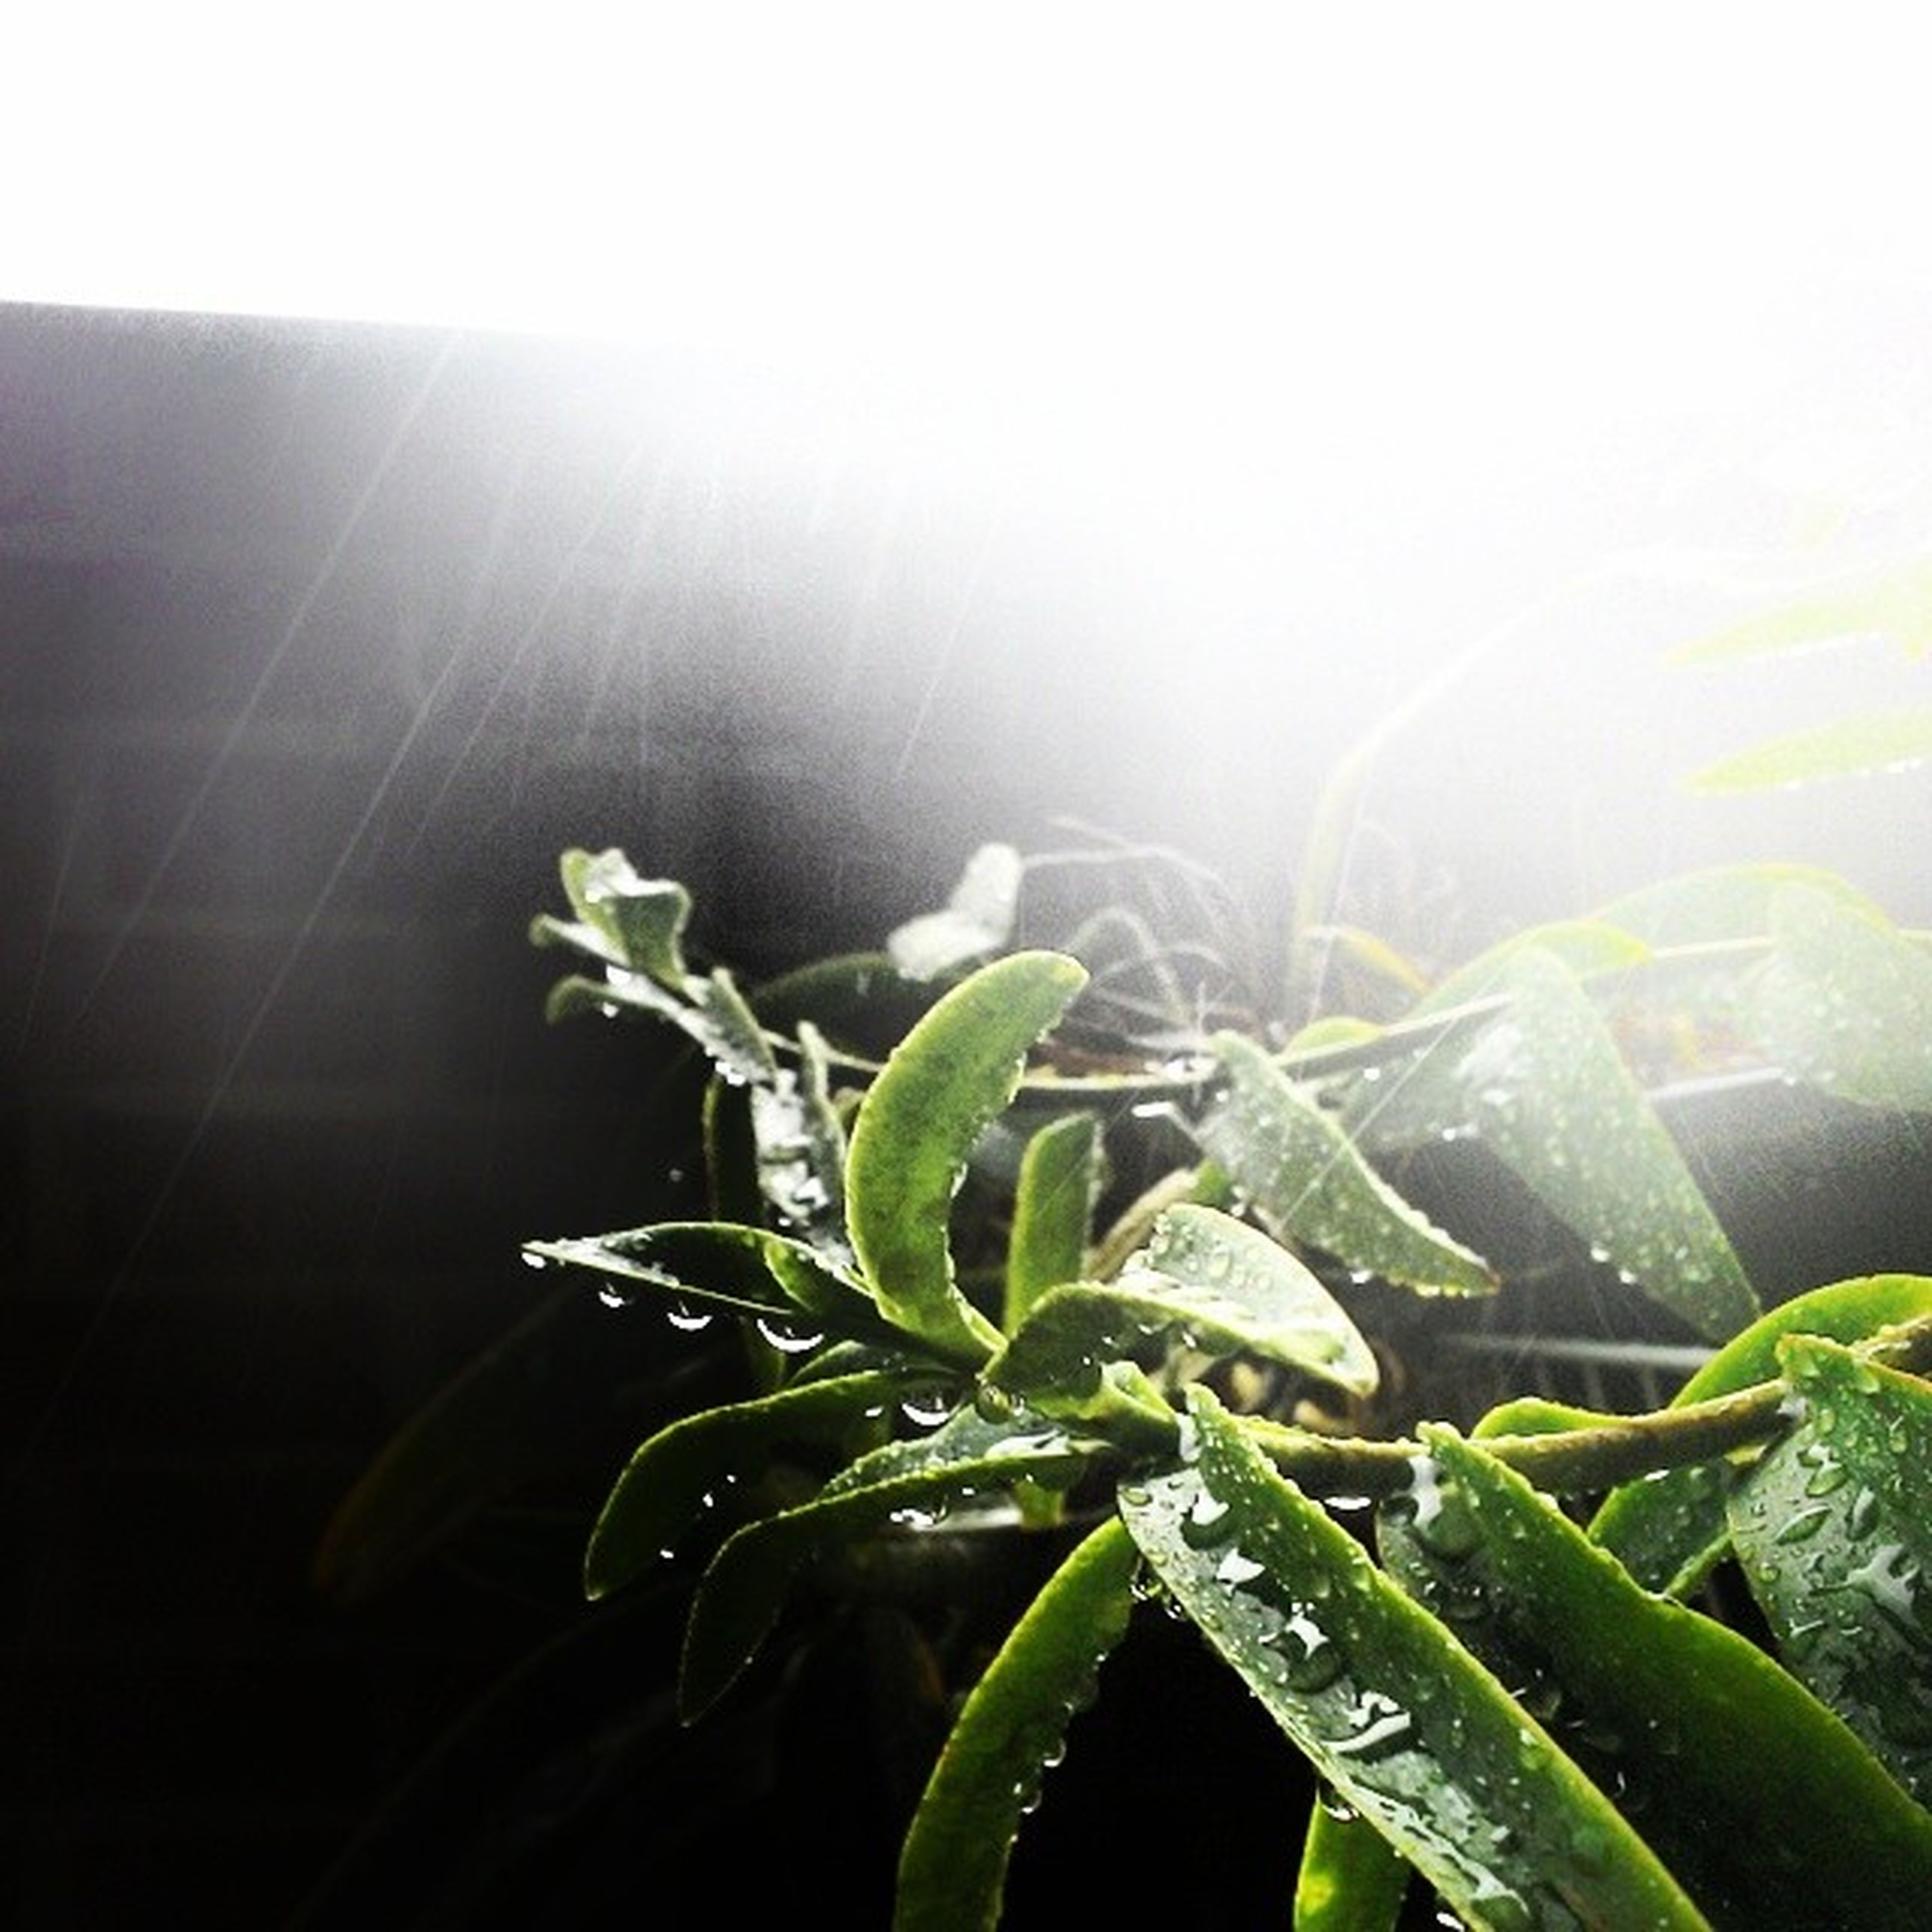 growth, plant, leaf, green color, sun, sunlight, nature, beauty in nature, sunbeam, freshness, lens flare, fragility, close-up, clear sky, tranquility, growing, day, no people, outdoors, sunny